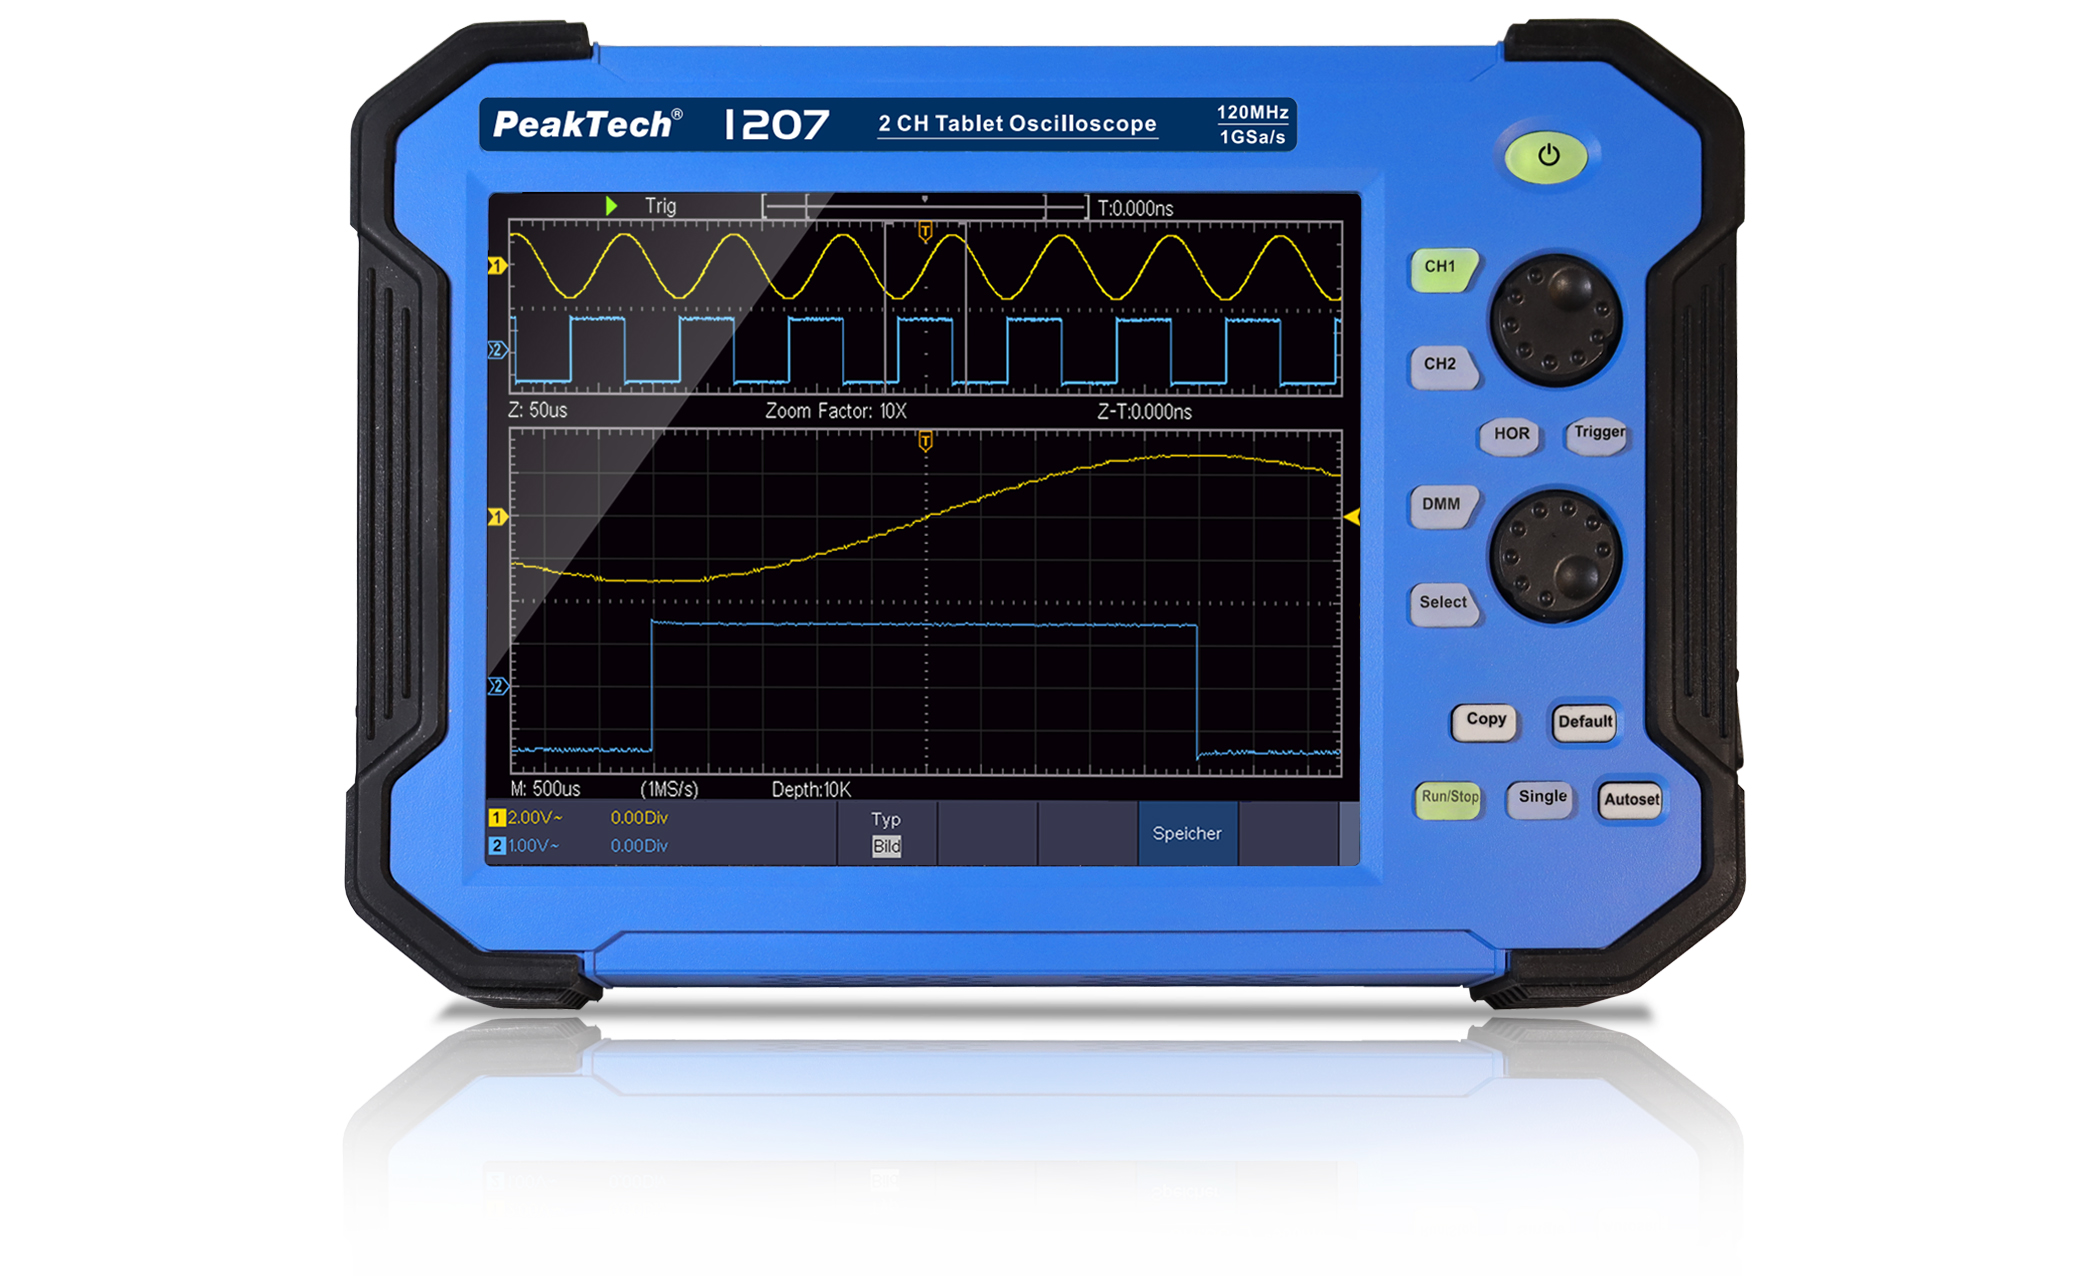 «PeakTech® P 1207» 120 MHz / 2 CH, 1 GS/s tablet oscilloscope